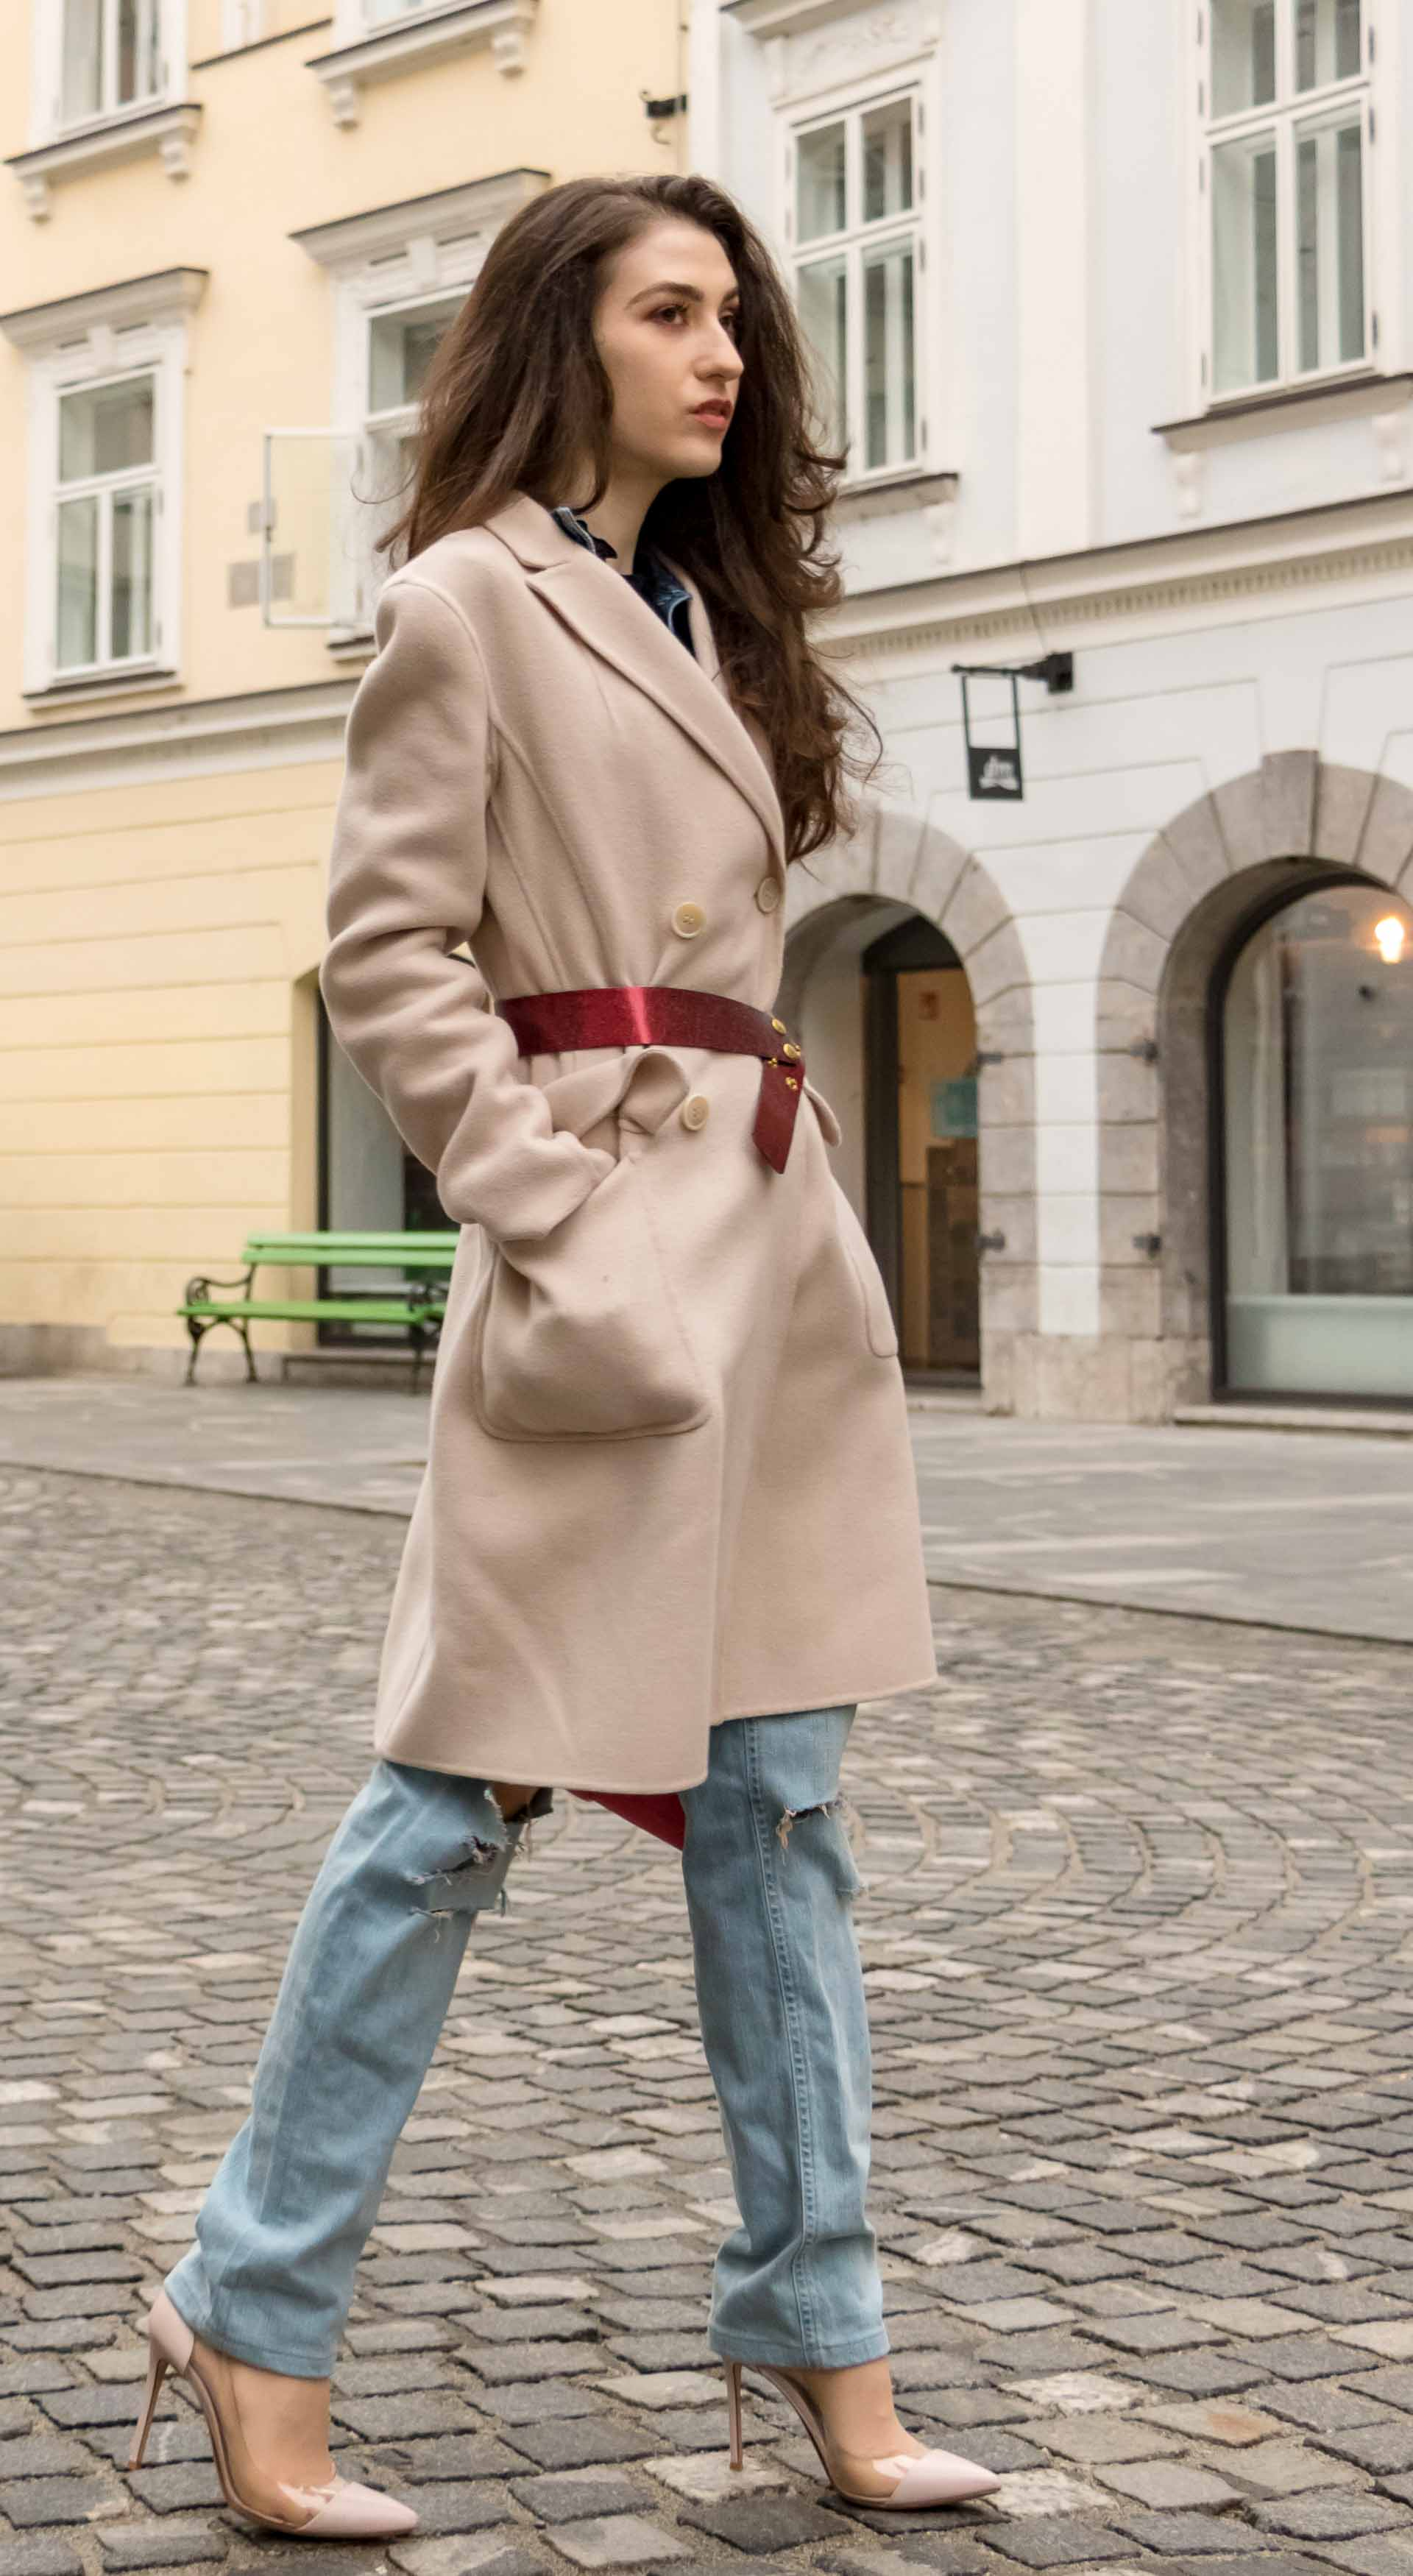 Fashion Blogger Veronika Lipar of Brunette from Wall Street dressed in ripped blue Levi's jeans, off-white double breasted Weekend Maxmara coat, red dangling belt, blush Gianvito Rossi plexi pumps, See by Chloe pink top handle bag, blue leather gloves walking in Ljubljana